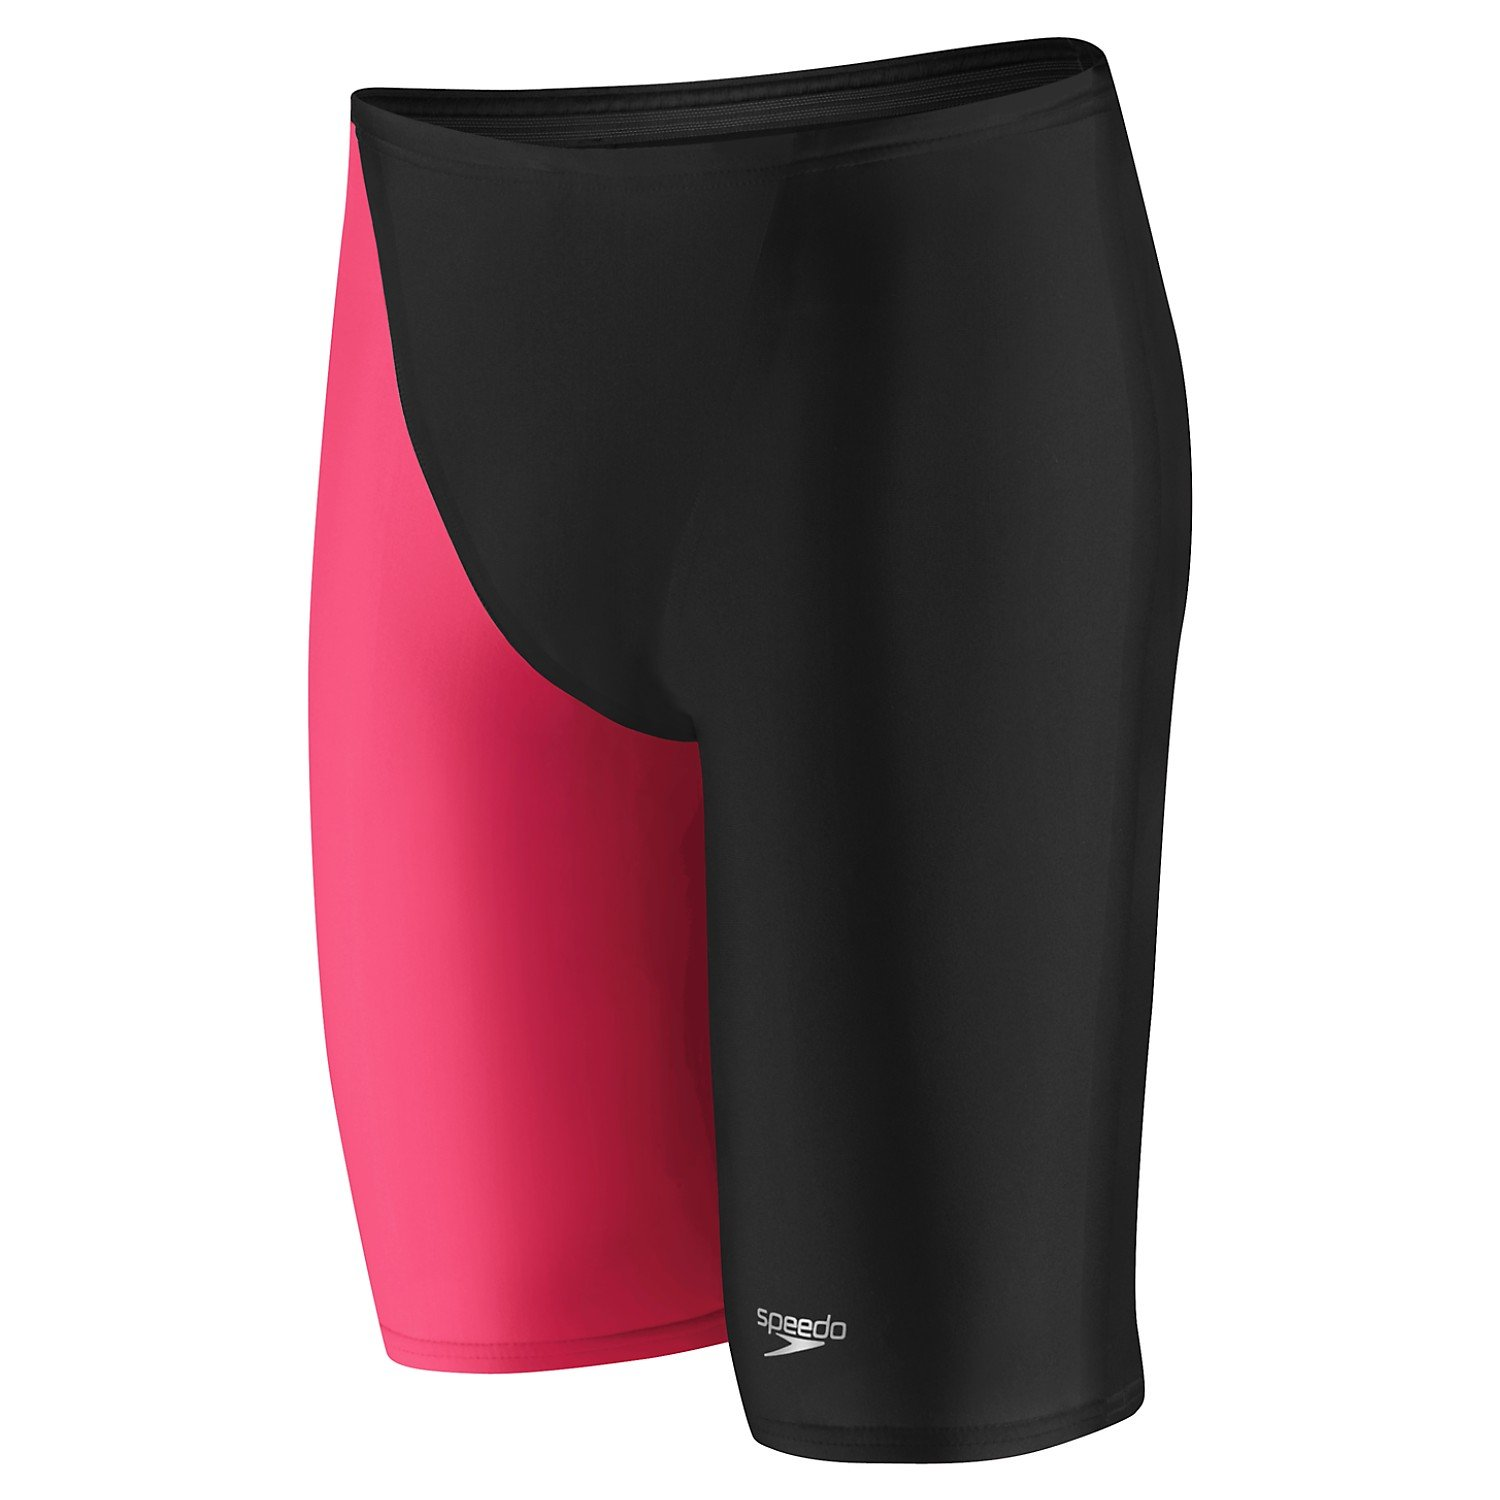 Speedo LZR Elite 2 High Waist Jammer,Hot Coral (007),26